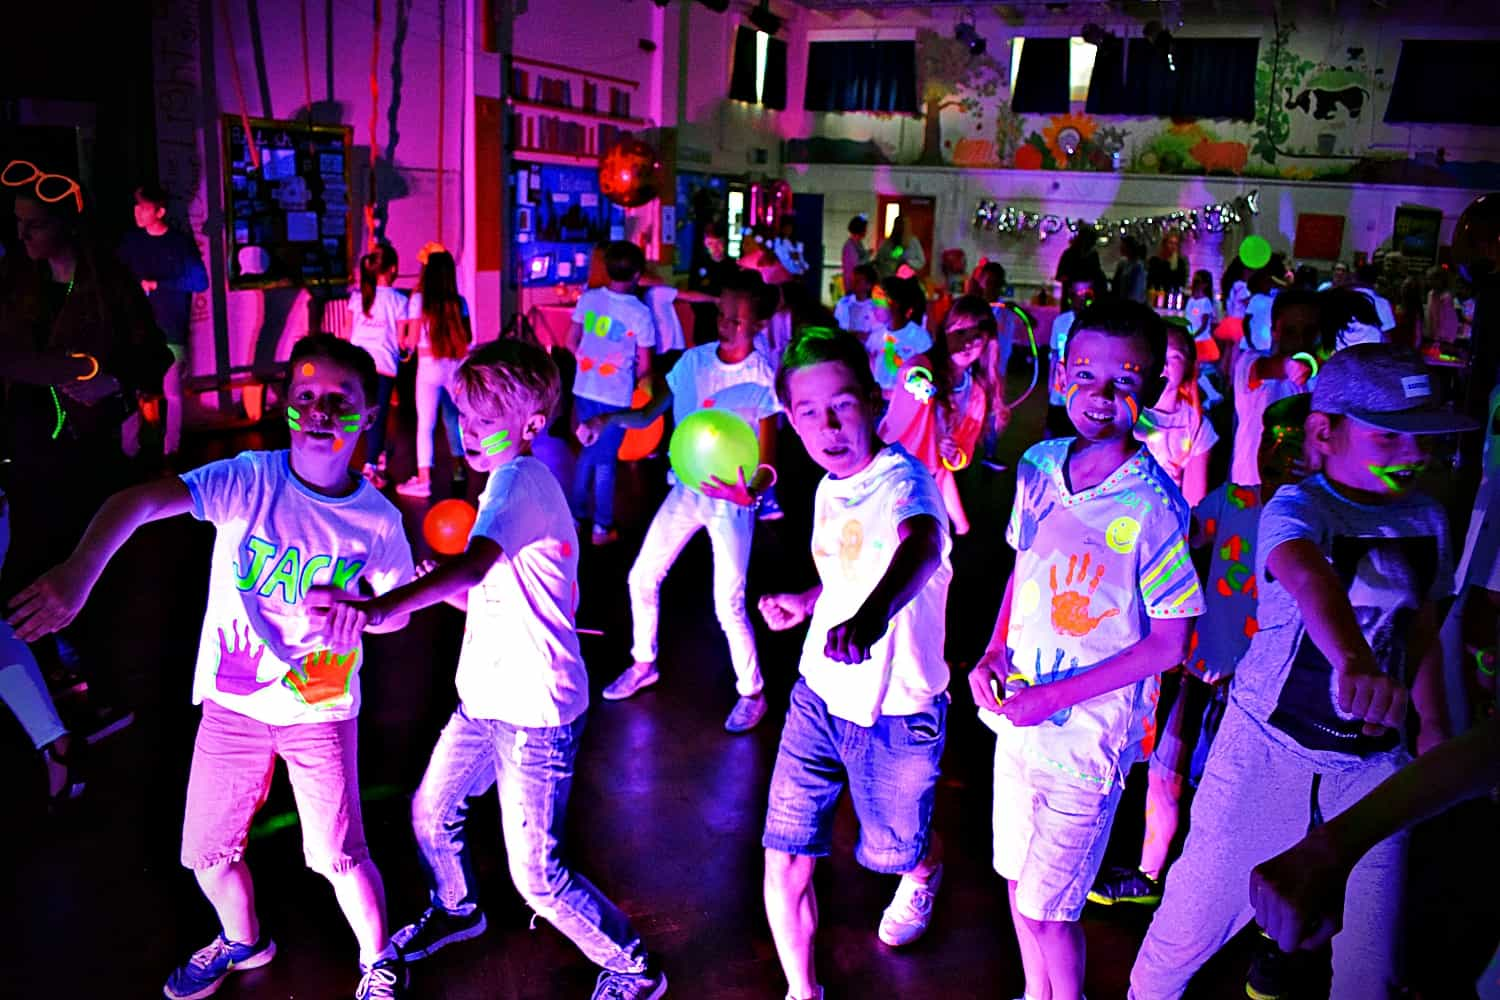 UV glow discos Essex - MMENT